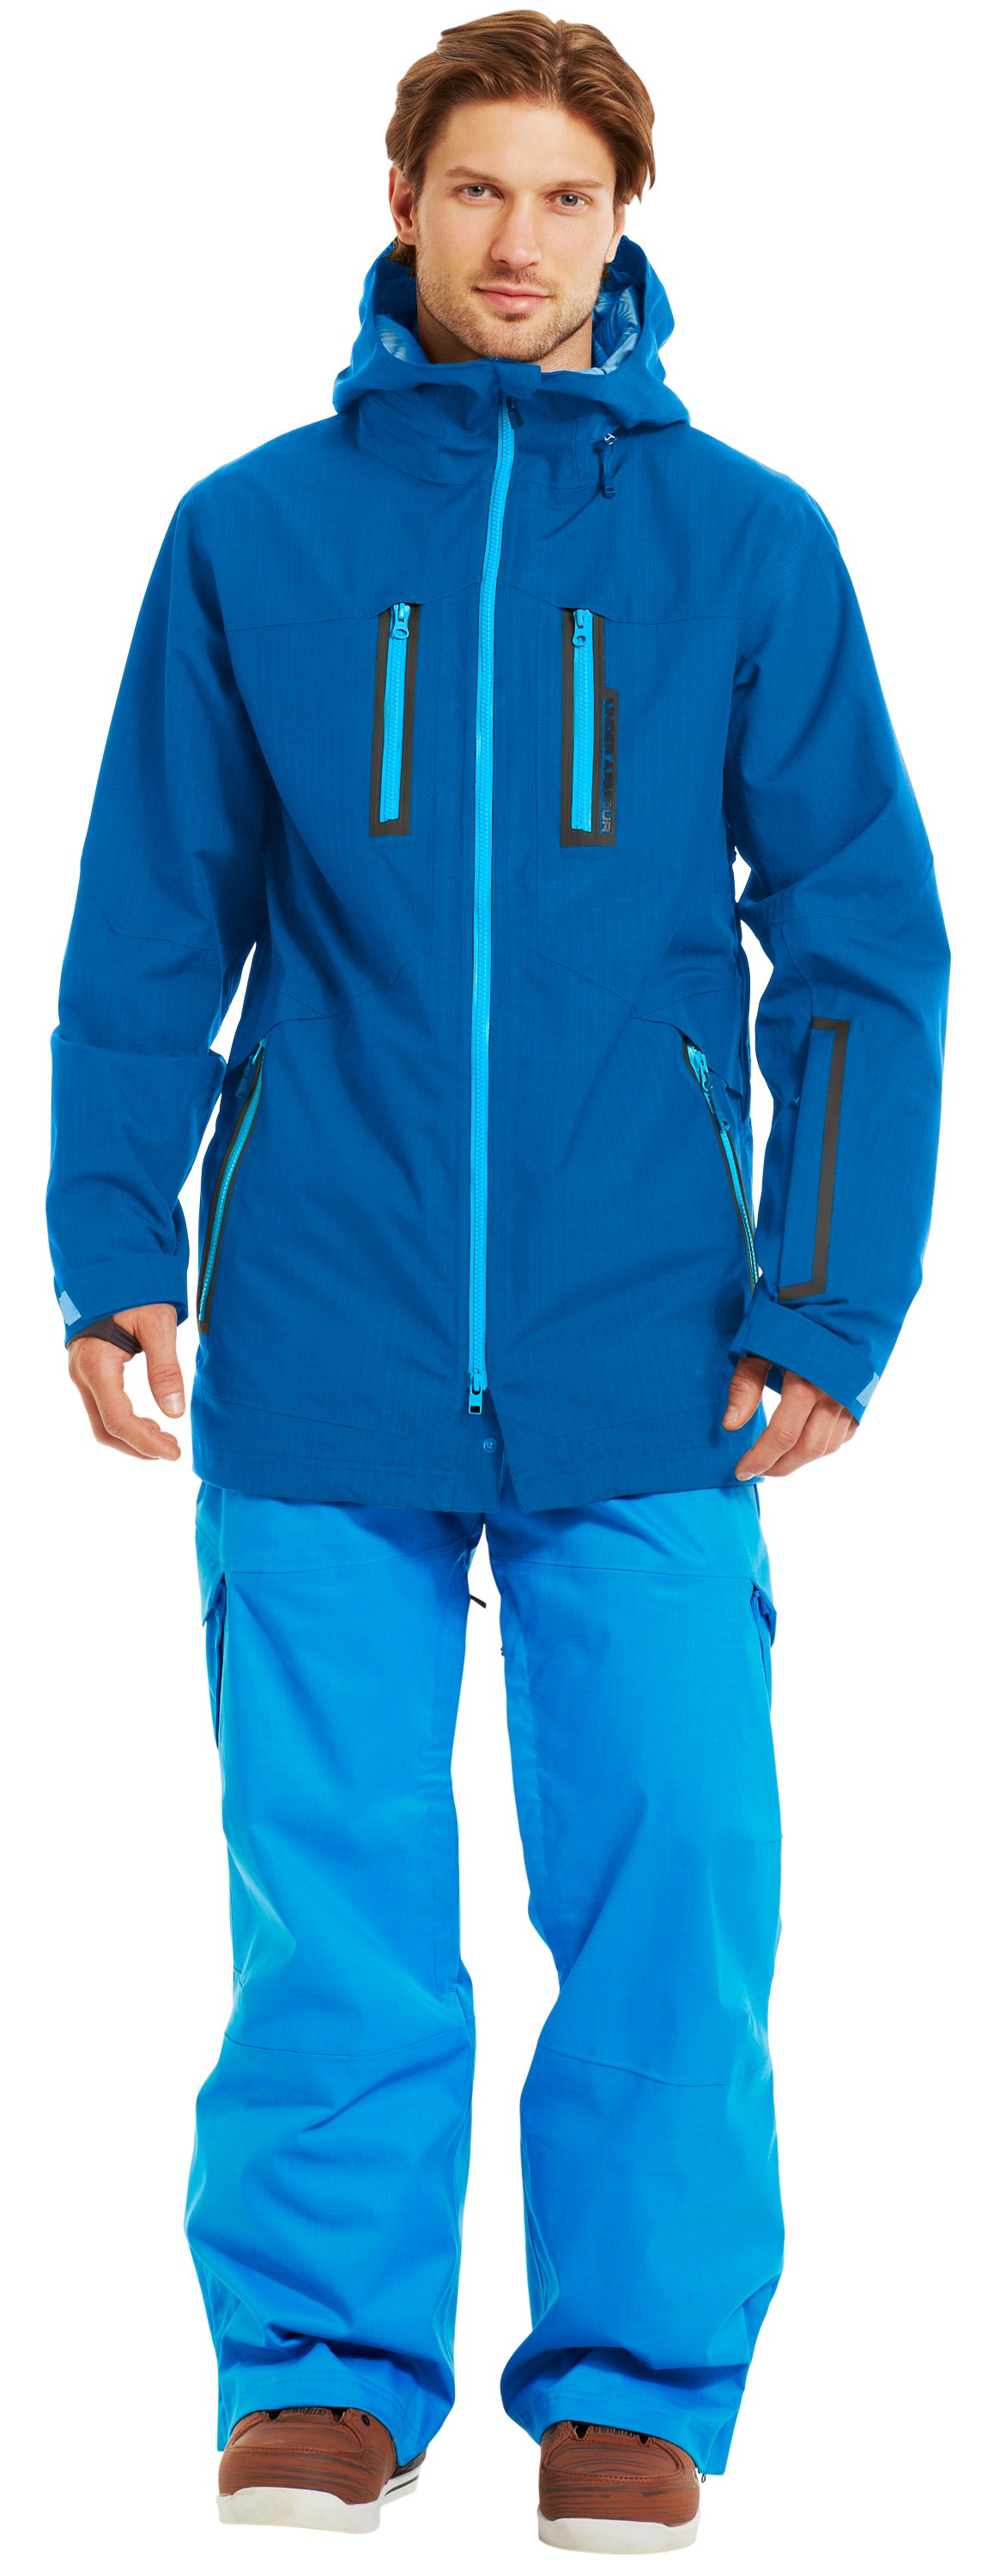 Men's ColdGear® Infrared Enyo Shell Jacket, SNORKEL, zoomed image